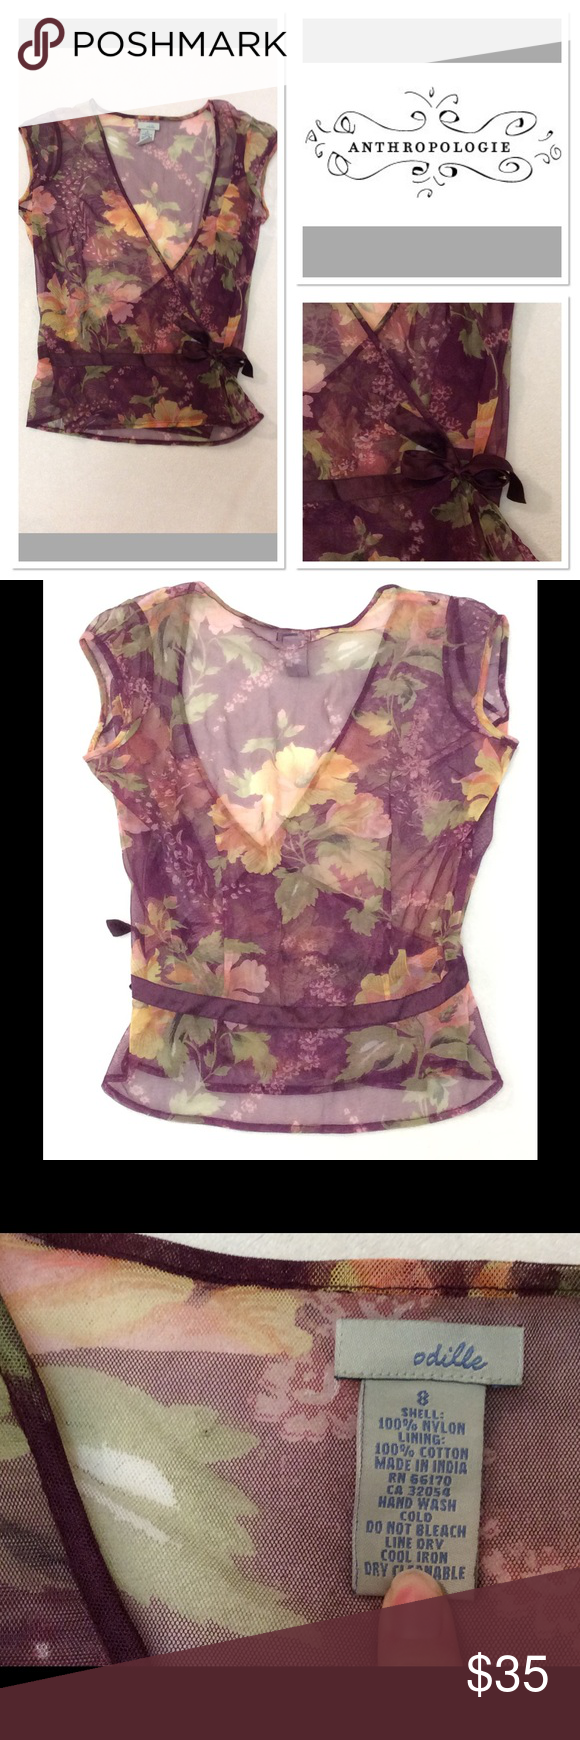 """8 ANTHROPOLOGIE ODILLE Sheer floral wrap top Brand: Odille (Anthropologie) Style: Sheer Wrap Top Size: 8 Measurements: Pit to Pit 19.5"""" , shoulder to hem 21.5"""" Material:  100% Nylon  Features: Floral pattern, Silky waist tie Condition: Excellent Anthropologie Tops"""